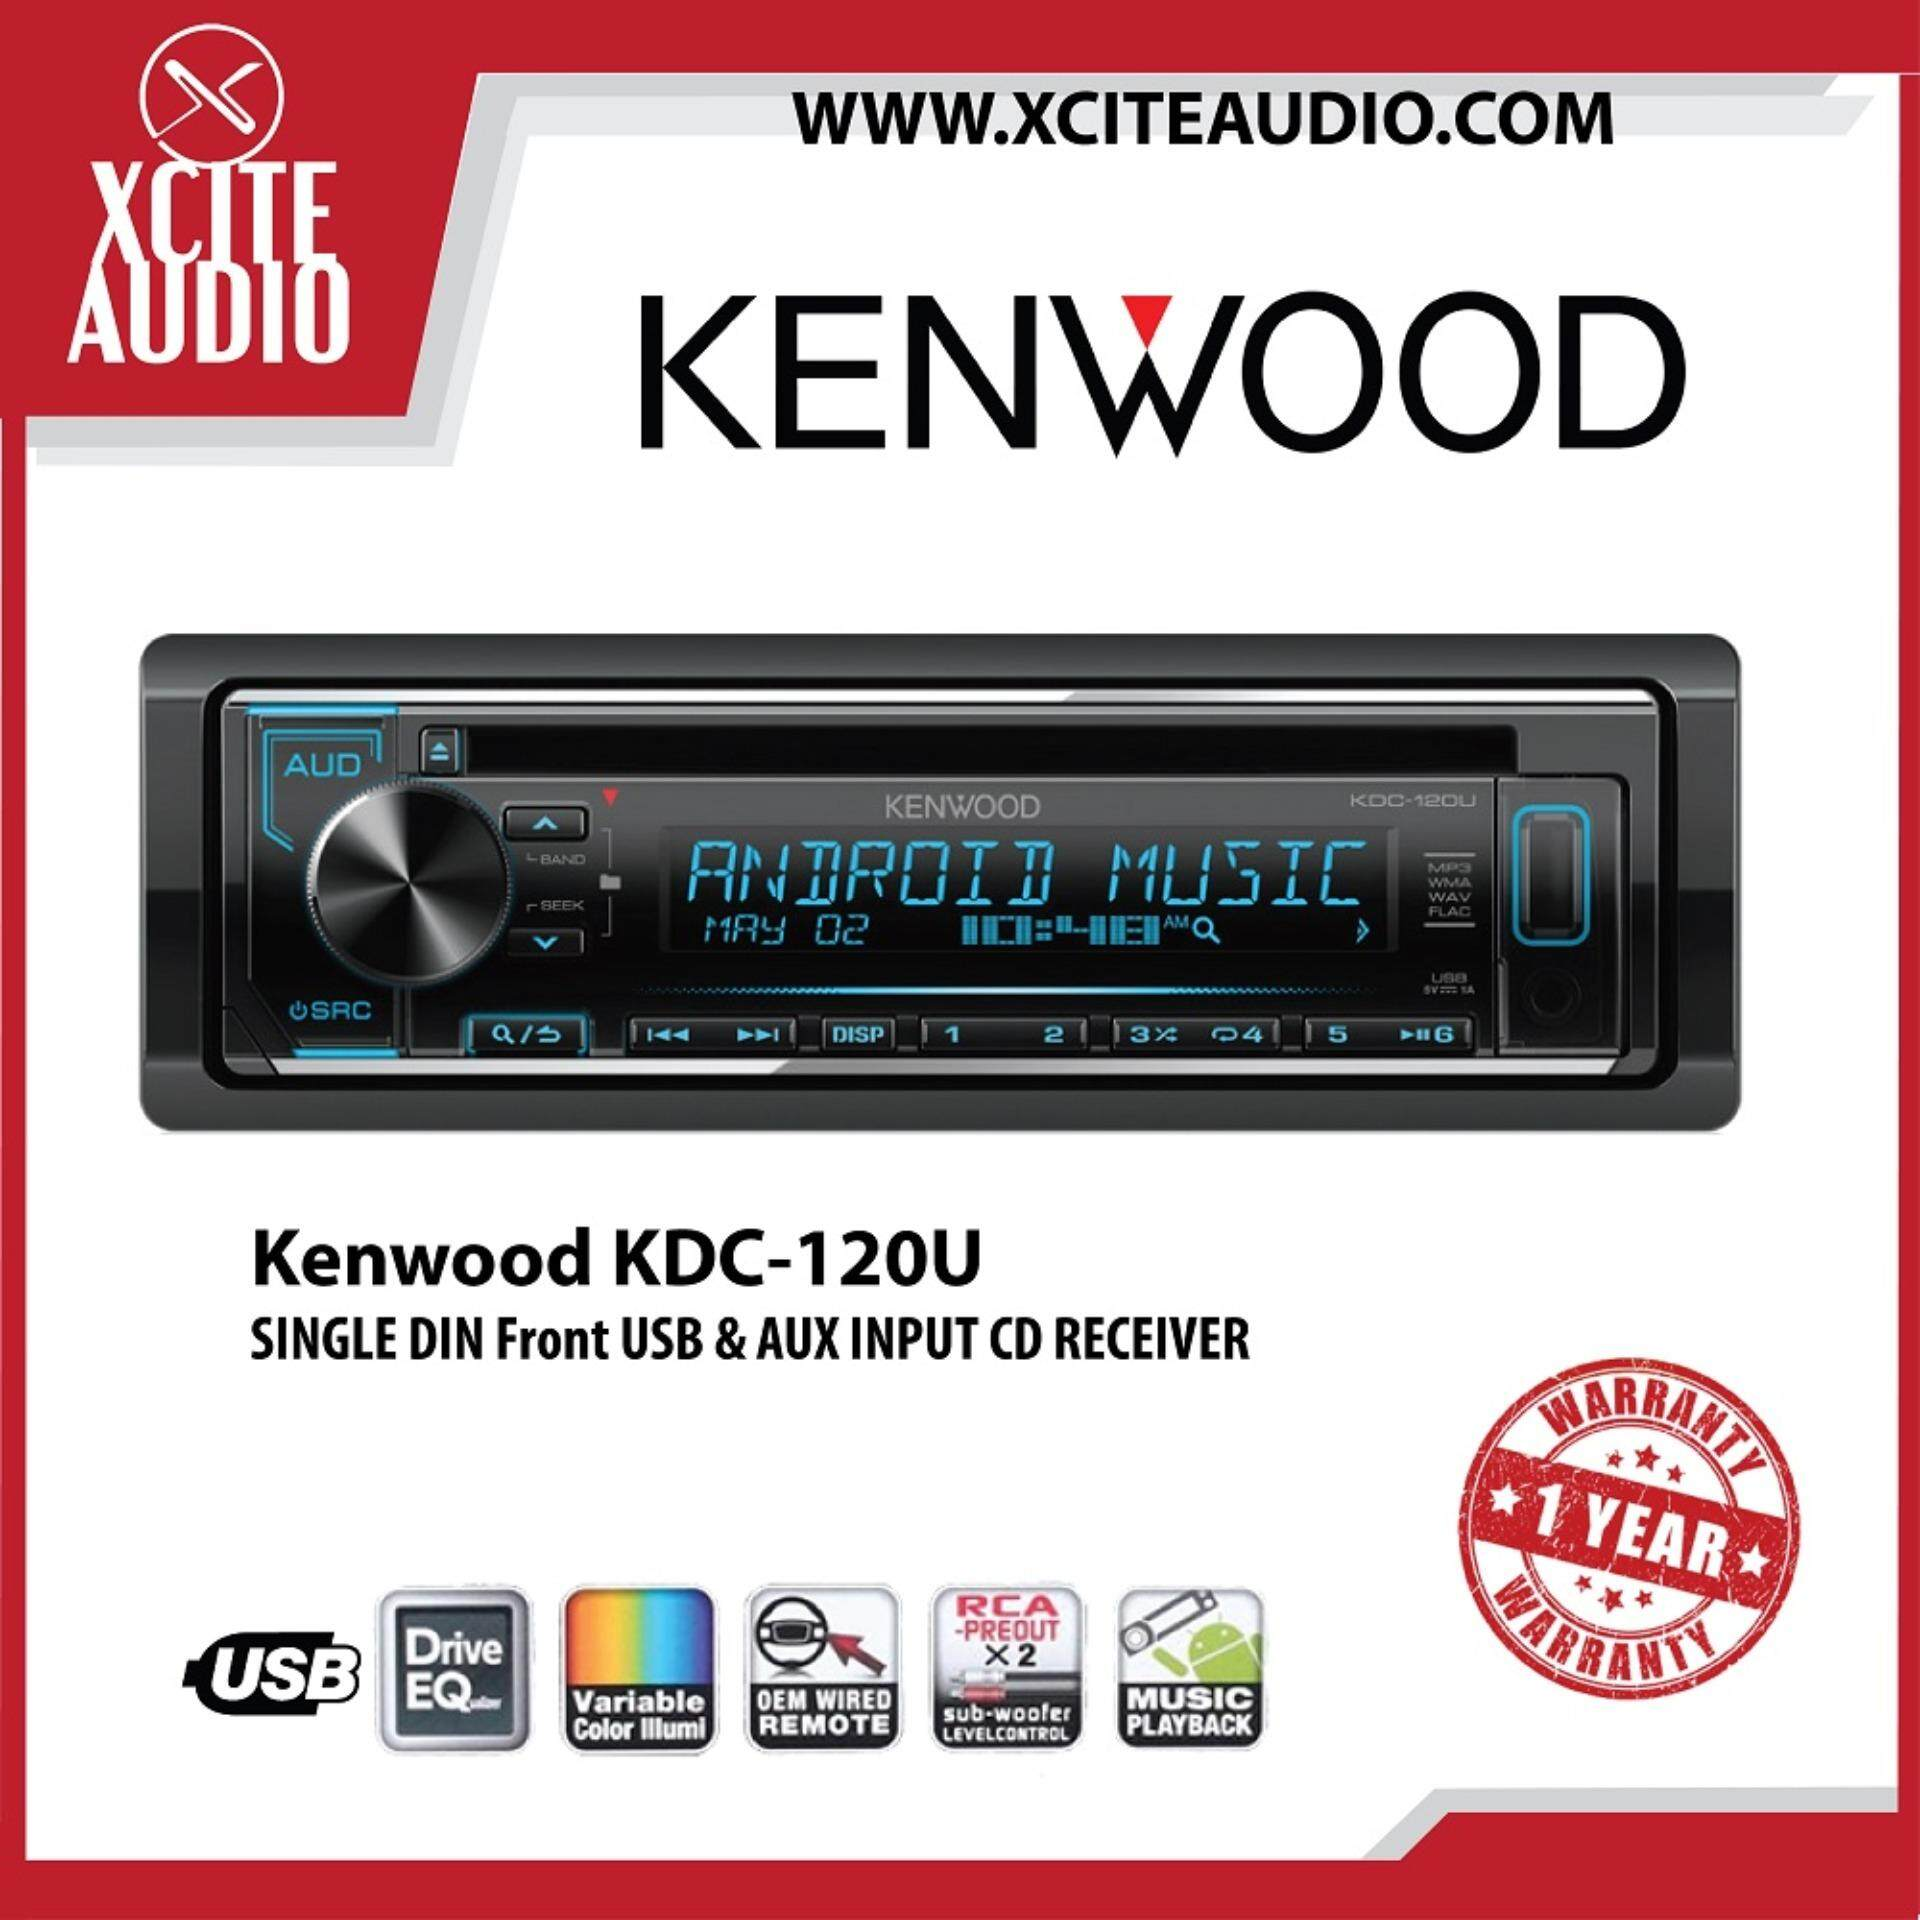 Kenwood KDC-120U Single Din Front USB & AUX Input CD Car Stereo Receiver  Headunit Player